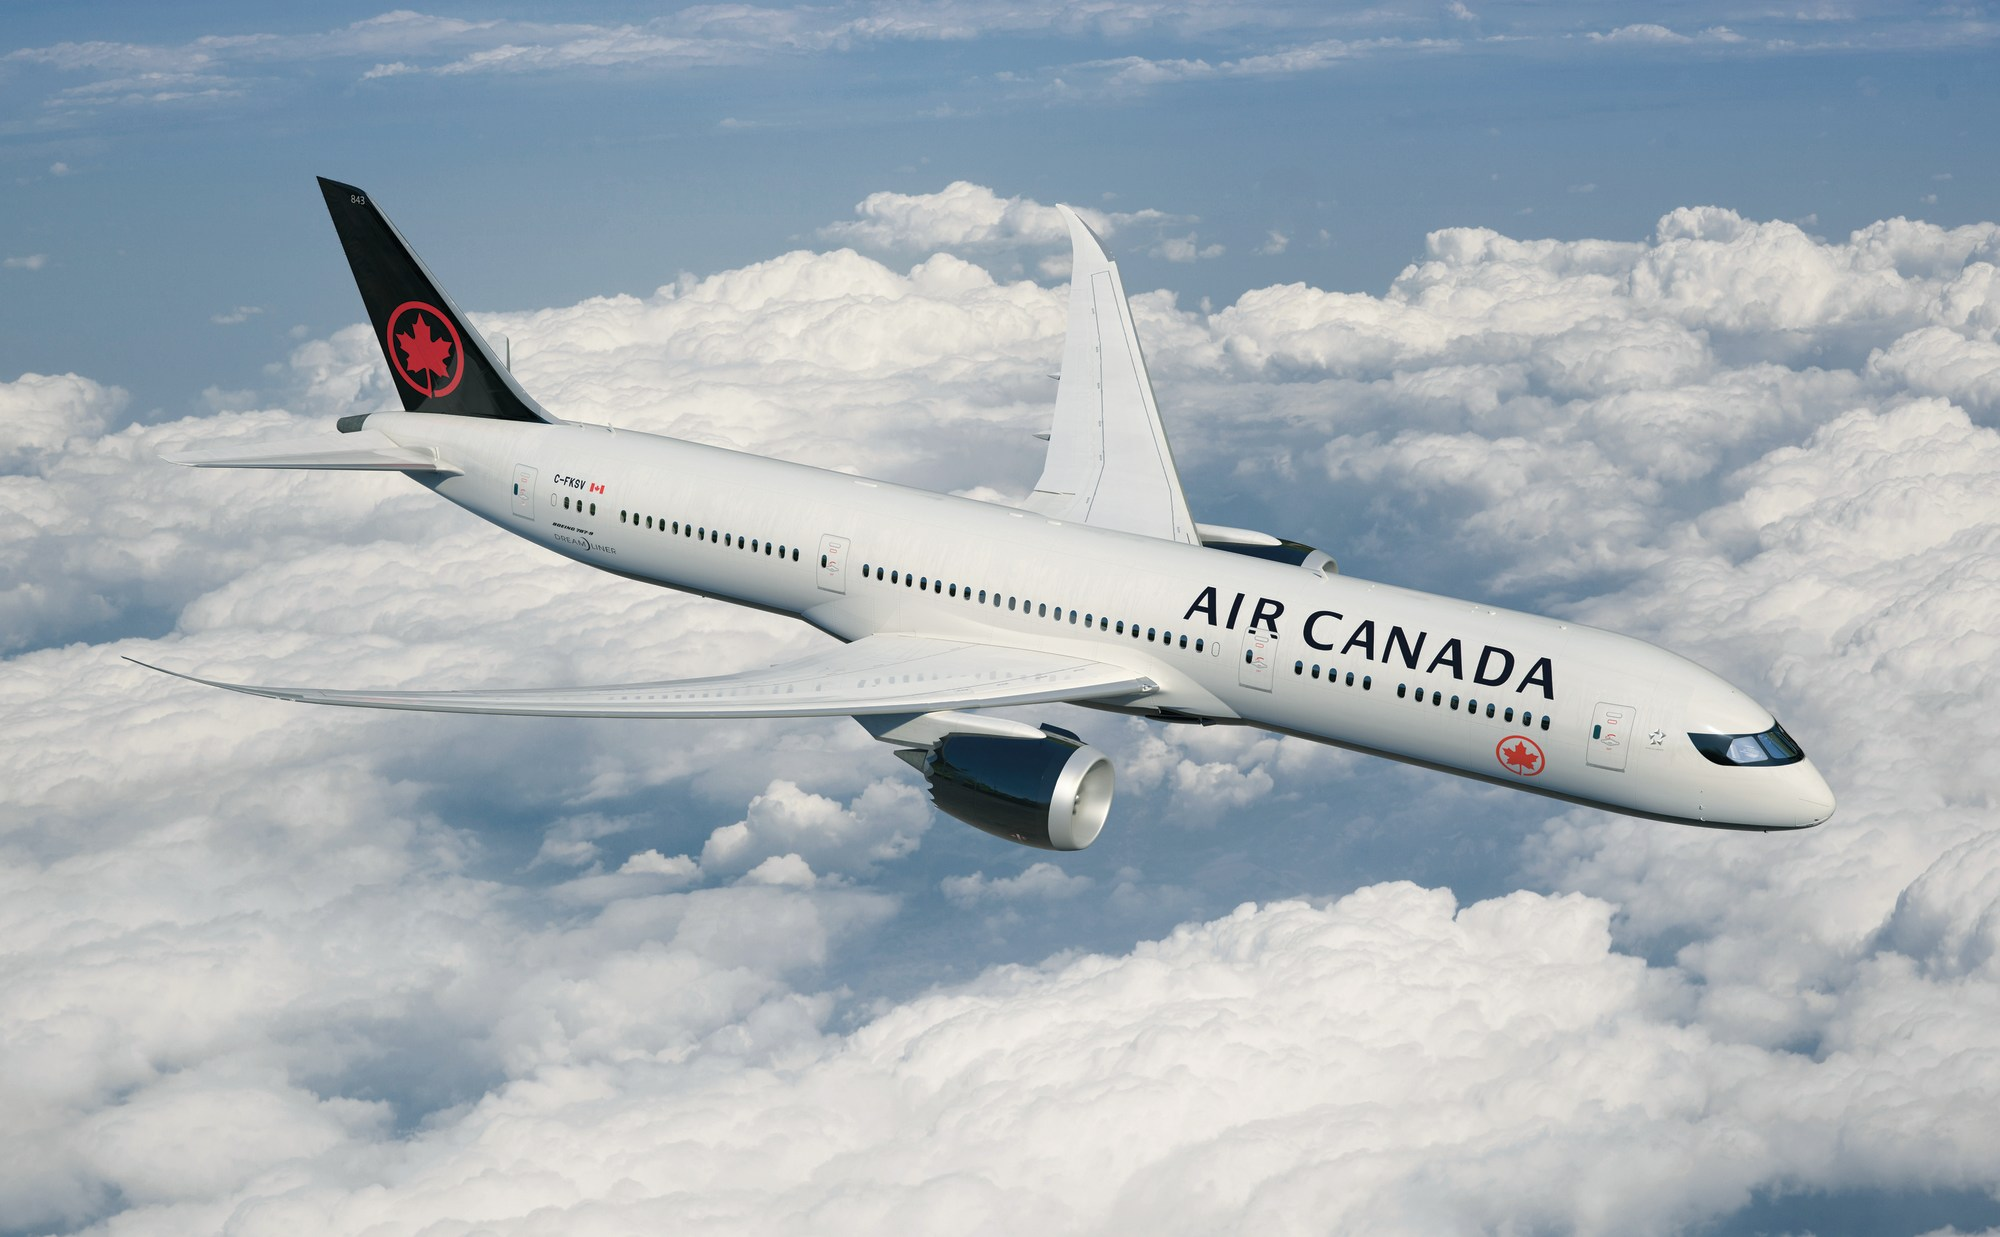 Air_Canada_Air_Canada_Unveils_New_Livery_Inspired_by_Canada.jpg